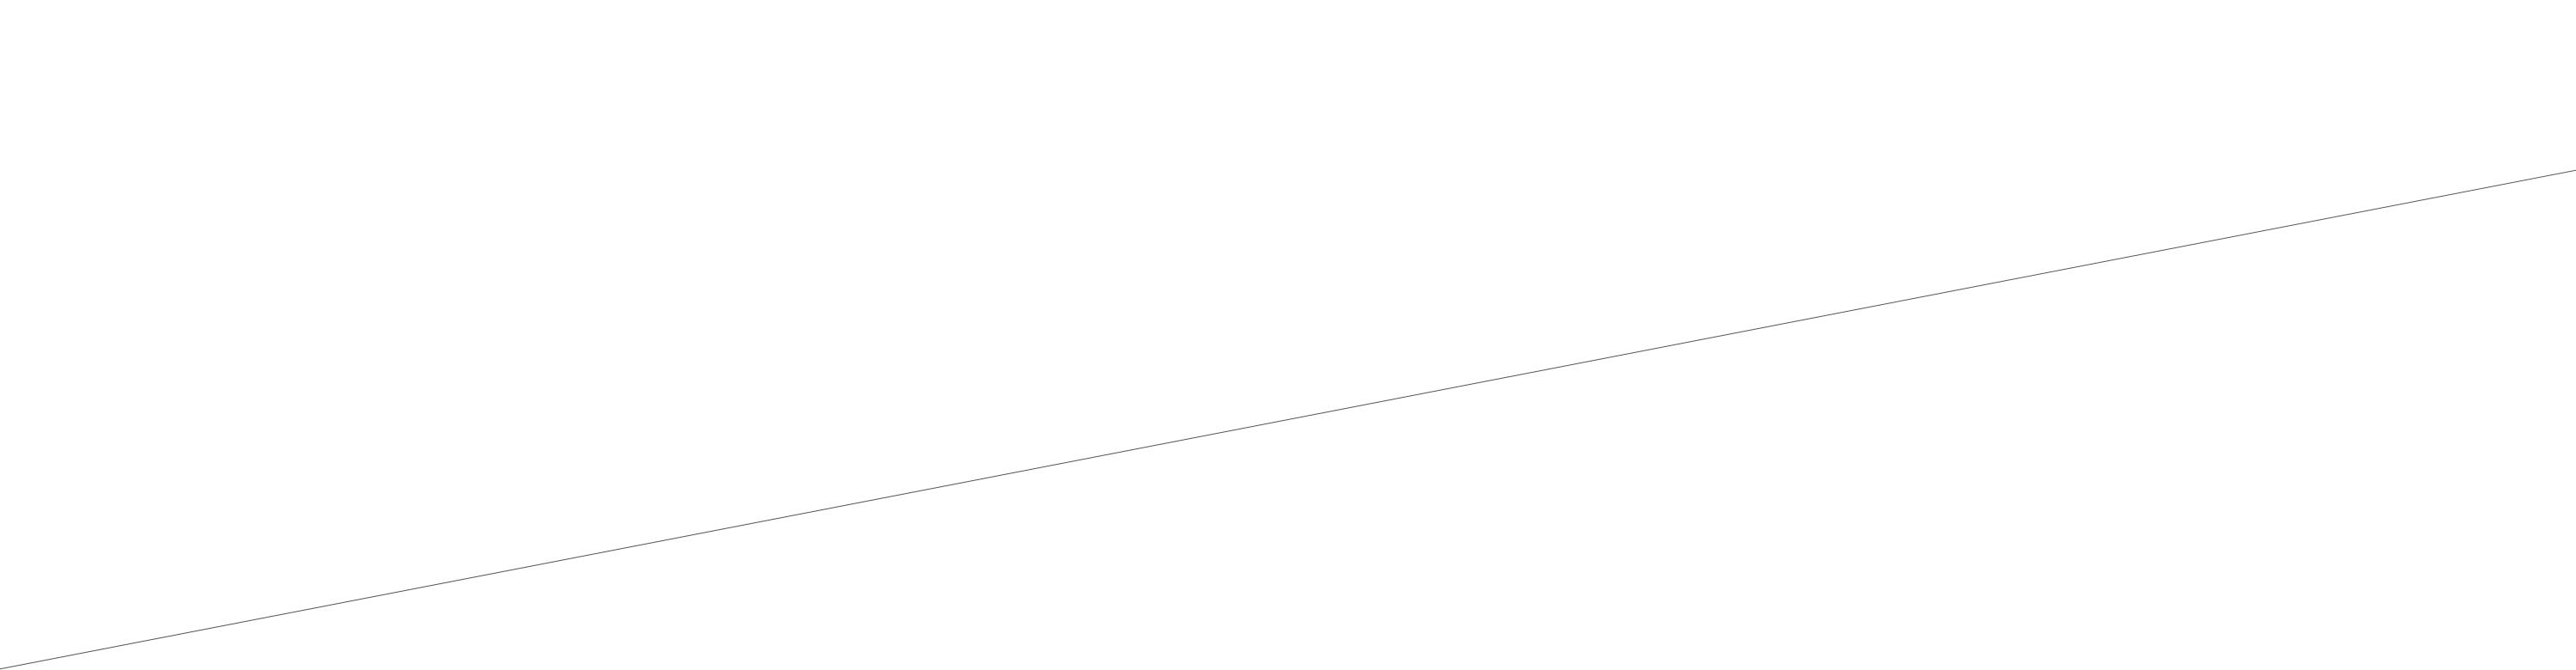 White Line Png & Free White Line.png Transparent Images ...